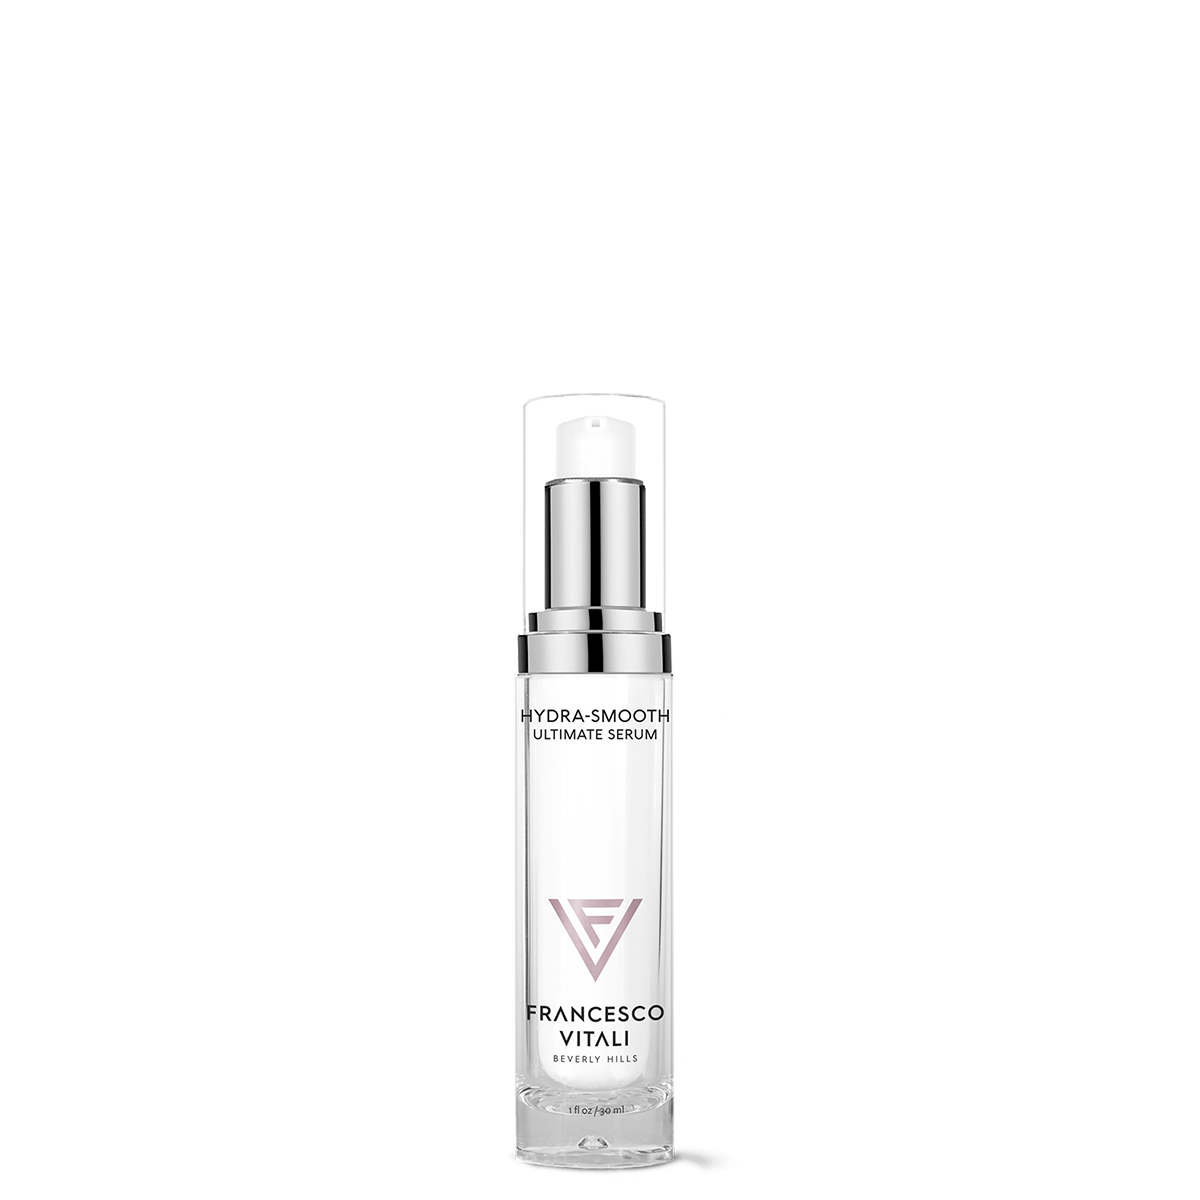 Hydra-smooth - Ultimate Serum